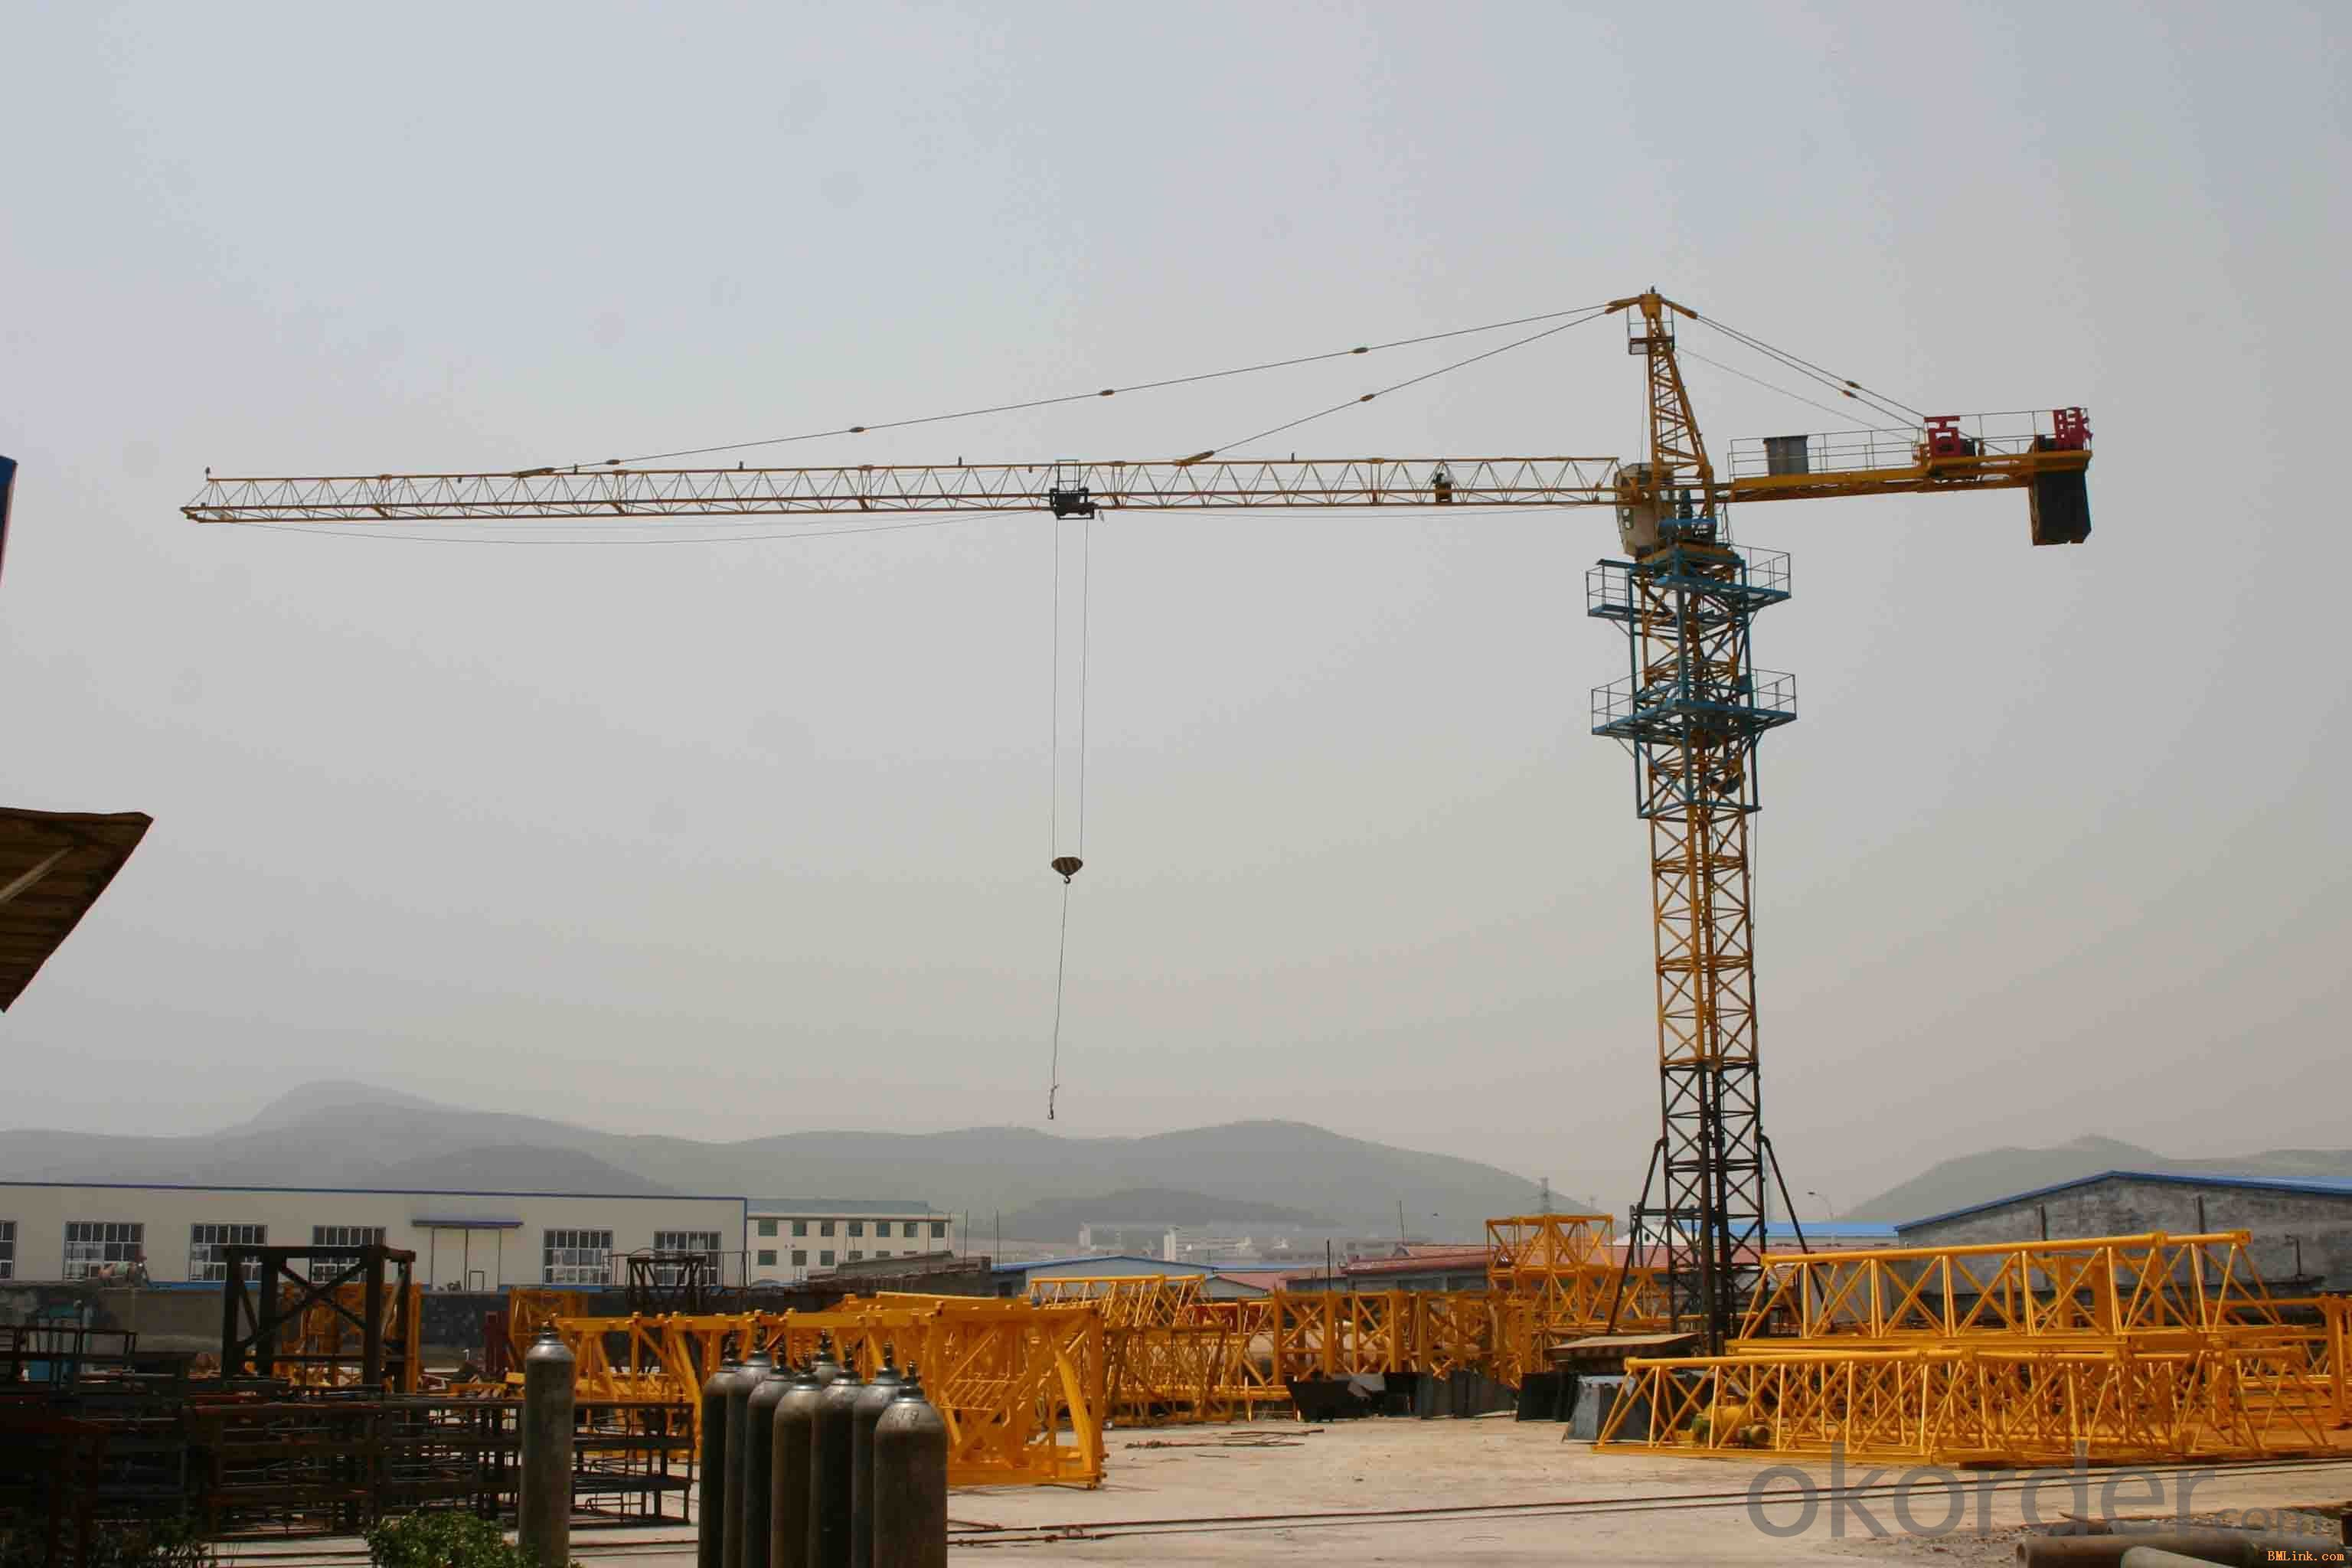 TTC8018-16Flat type tower crane Flat series